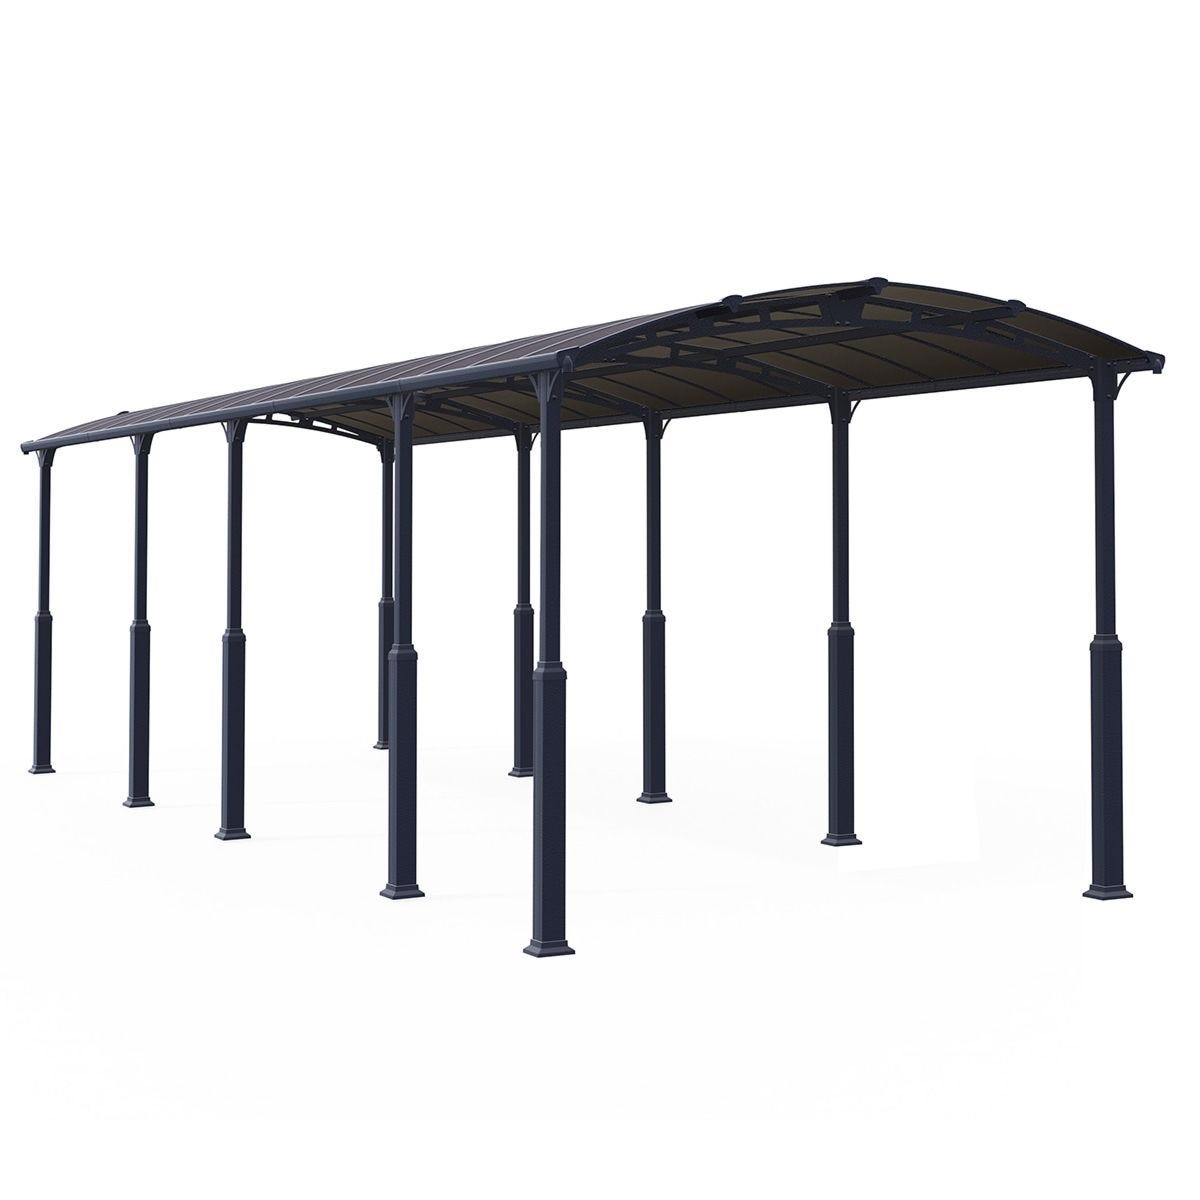 Palram Alpine 12' x 35' RV Carport - Grey